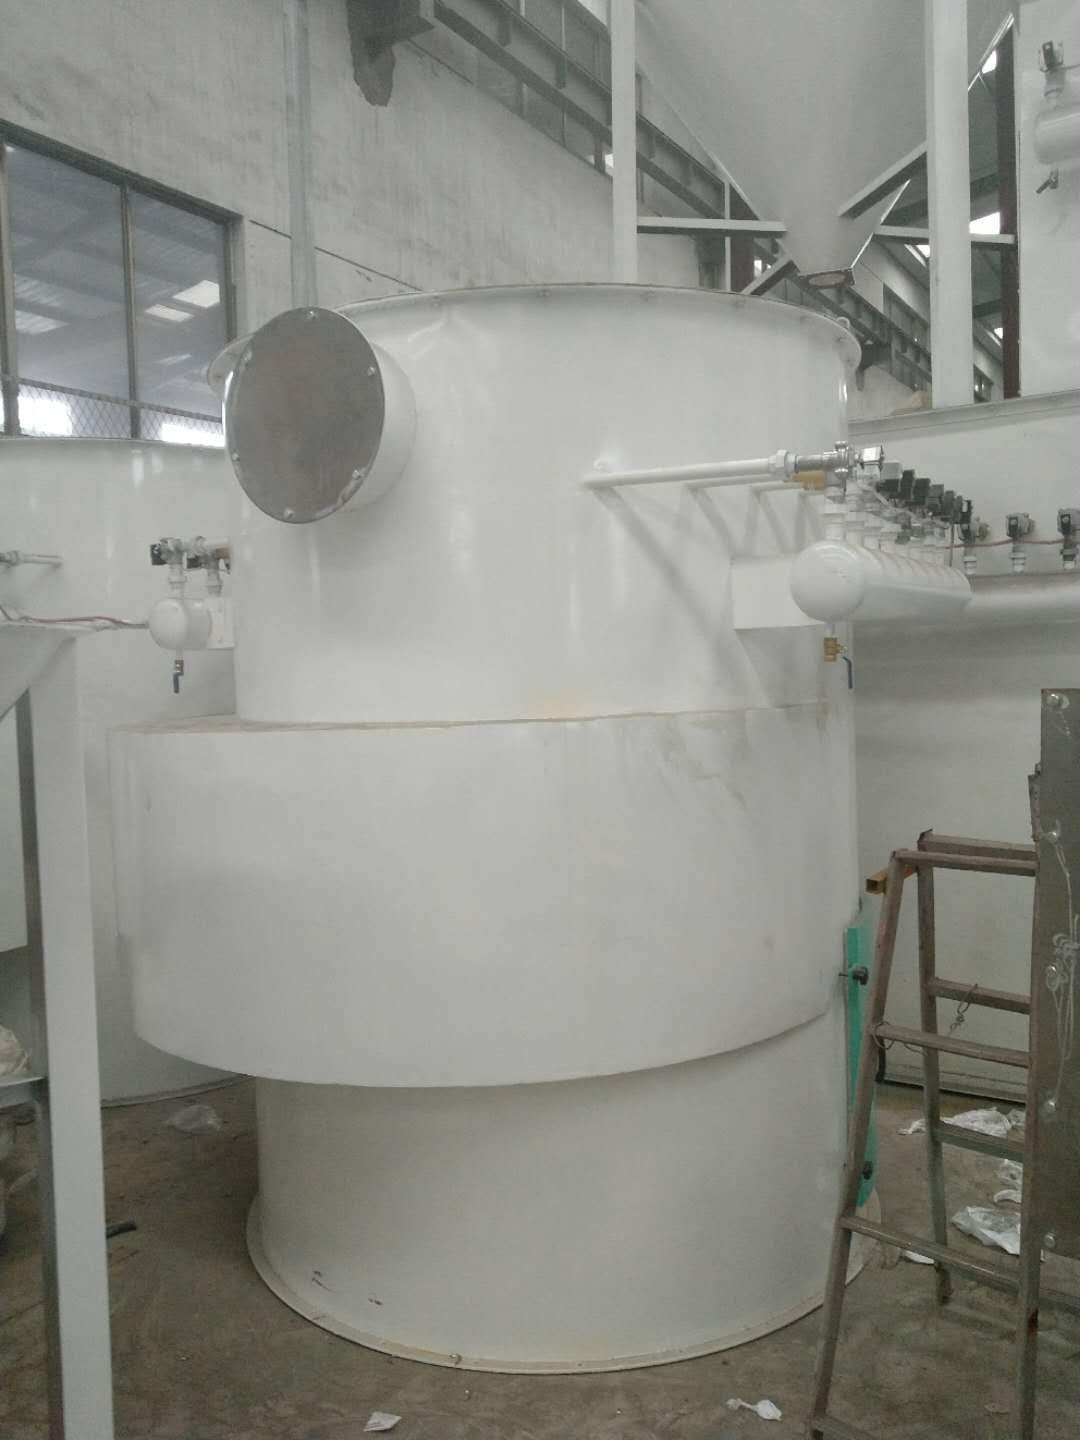 Impulse dust collector equipment